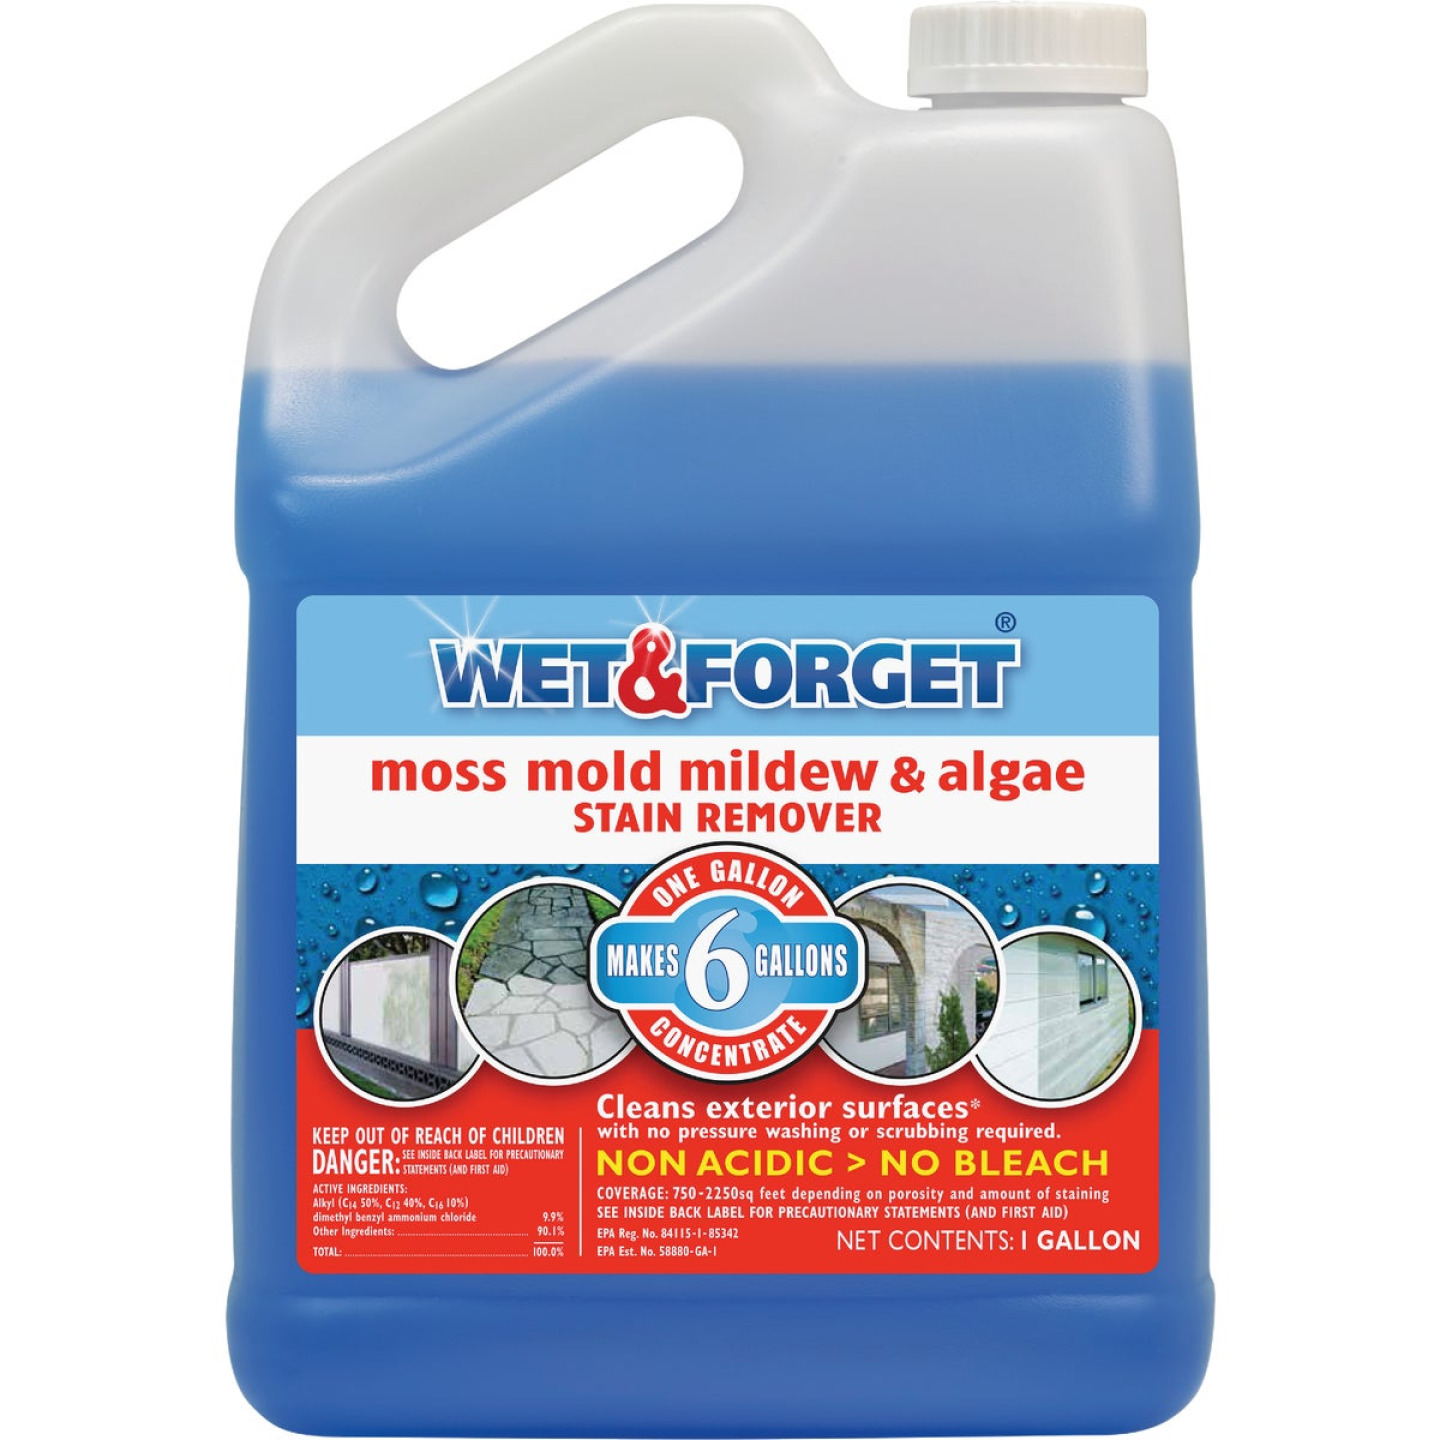 Wet & Forget 1 Gal. Liquid Concentrate Moss, Mildew, Algae, & Mold Stain Remover Image 1